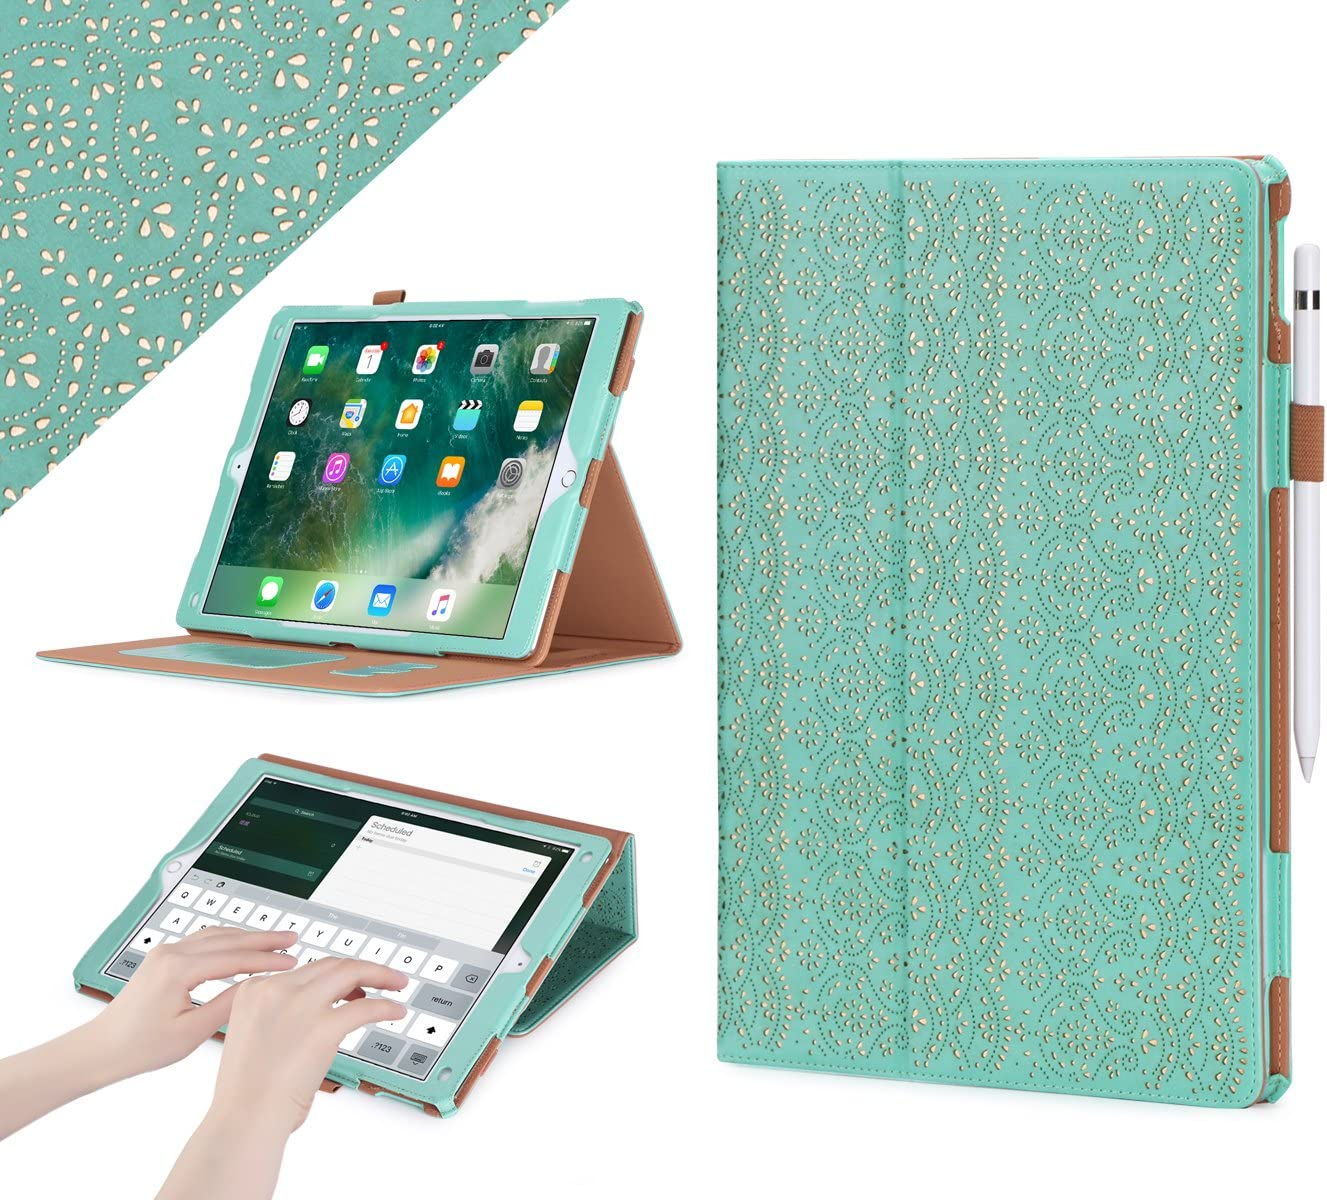 iPad Pro 12.9 (Compatible with 2017 and 2015 Model) Case, WWW [Luxury Laser Flower] Premium PU Leather Case Protective Cover with Auto Wake/Sleep Feature for iPad Pro 12.9 (Both 2017 and 2015) Green